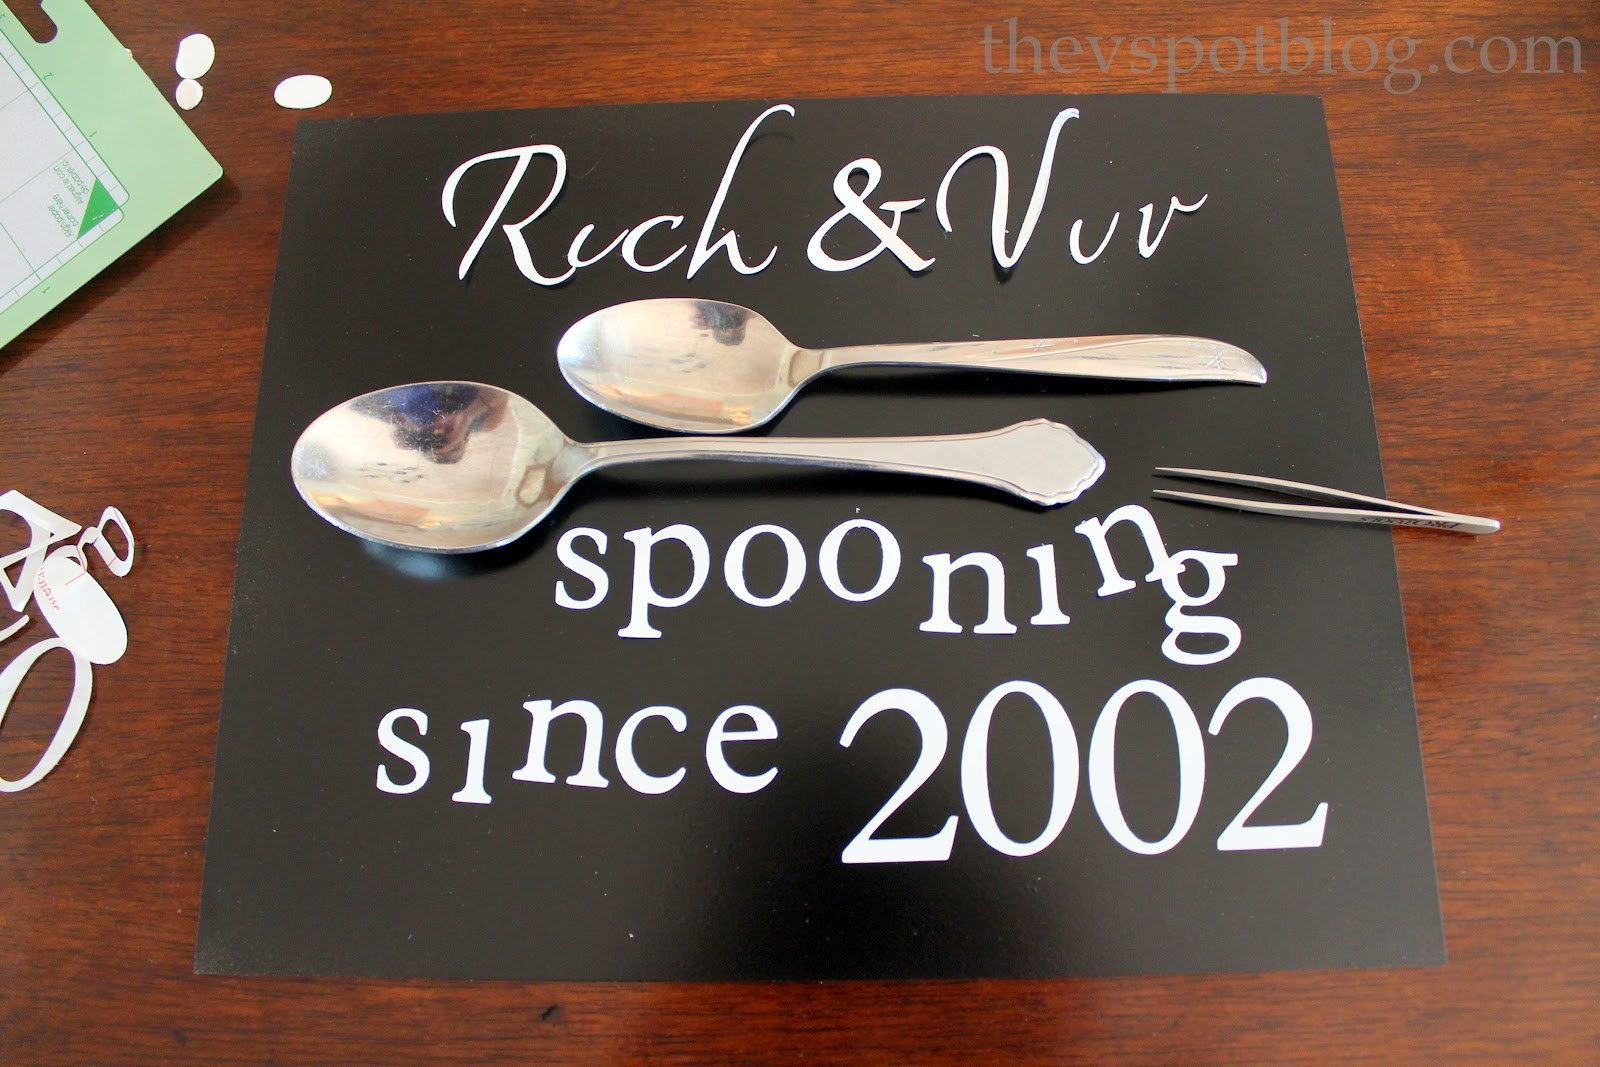 A DIY, personalized wedding or anniversary gift for less than $20 ...